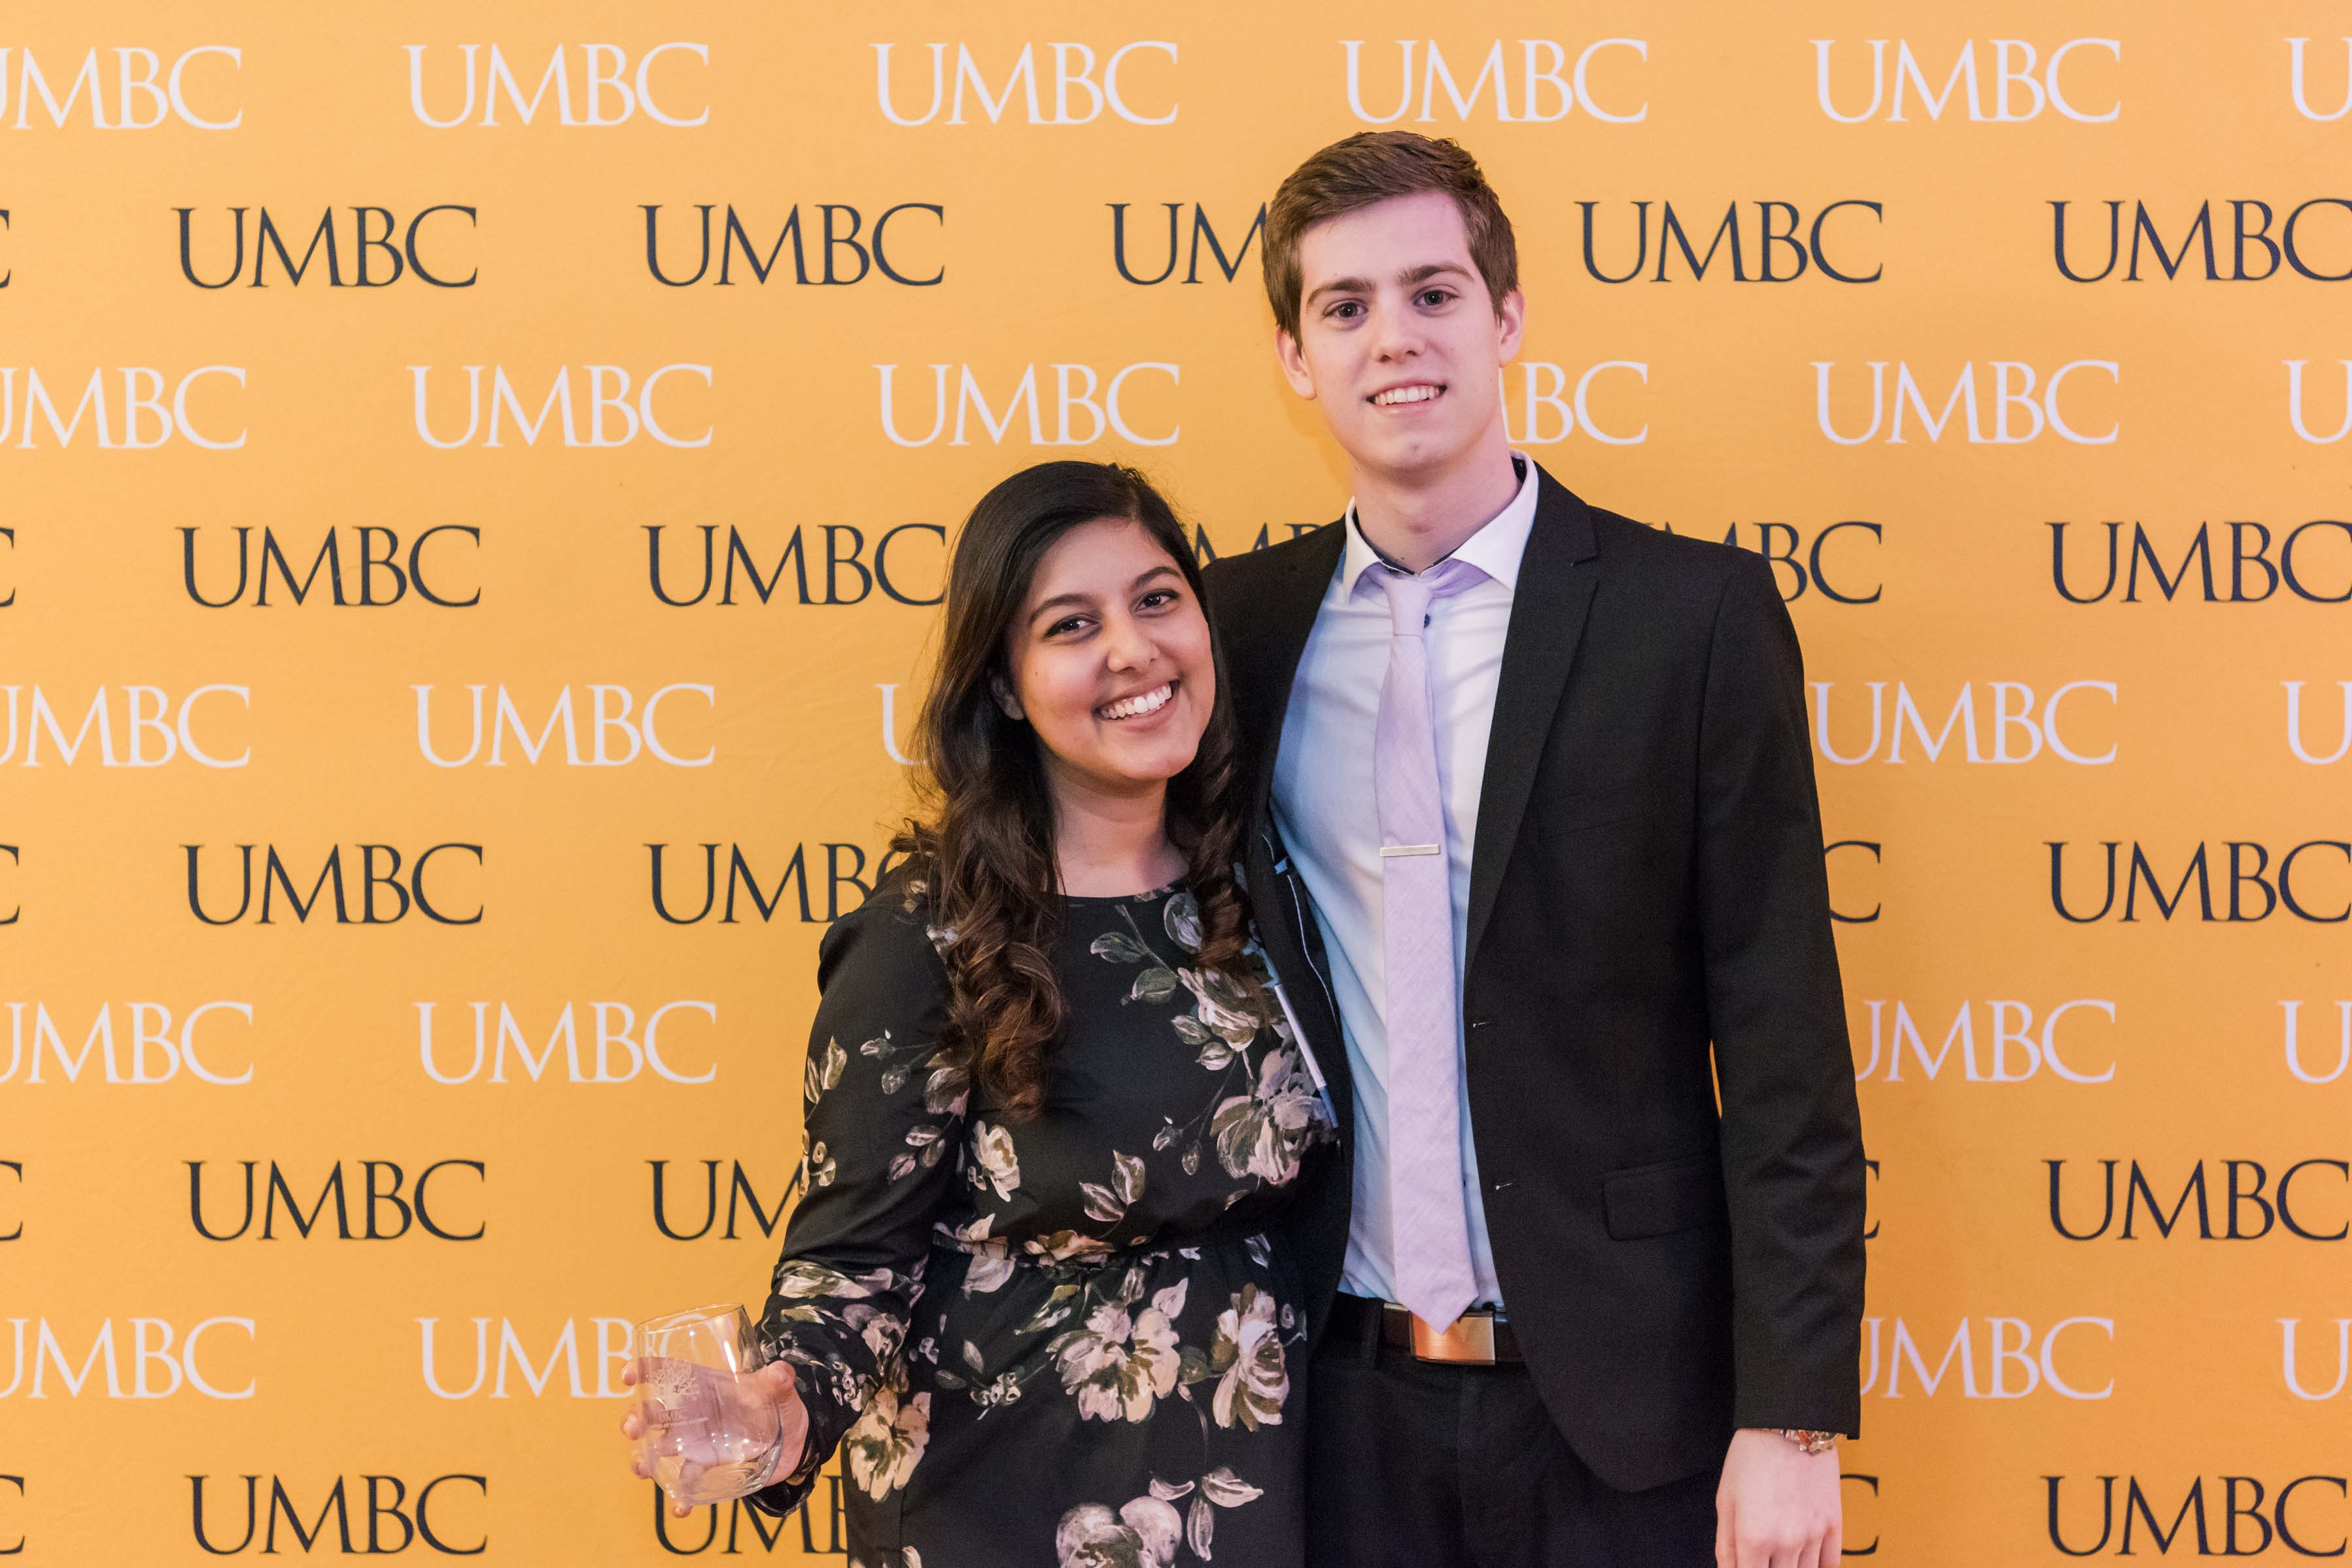 Poulomi poses with man wine glass in hand at UMBC wall for CYA event